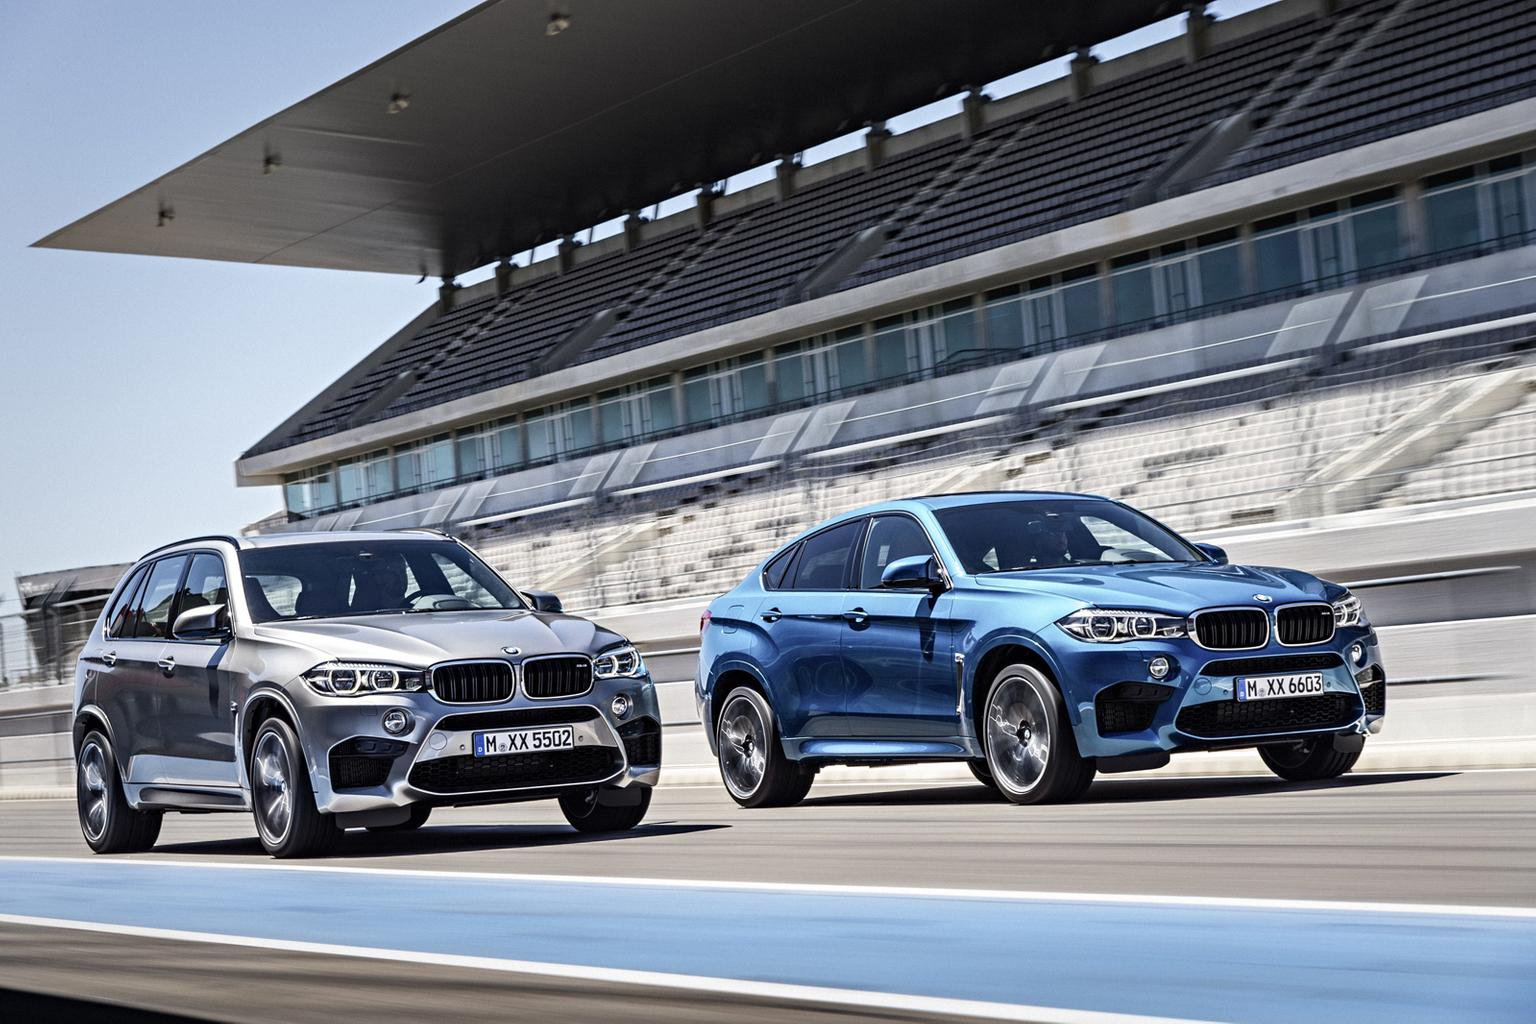 2015 BMW X5 M and X6 M revealed - first pictures, engines, on-sale date